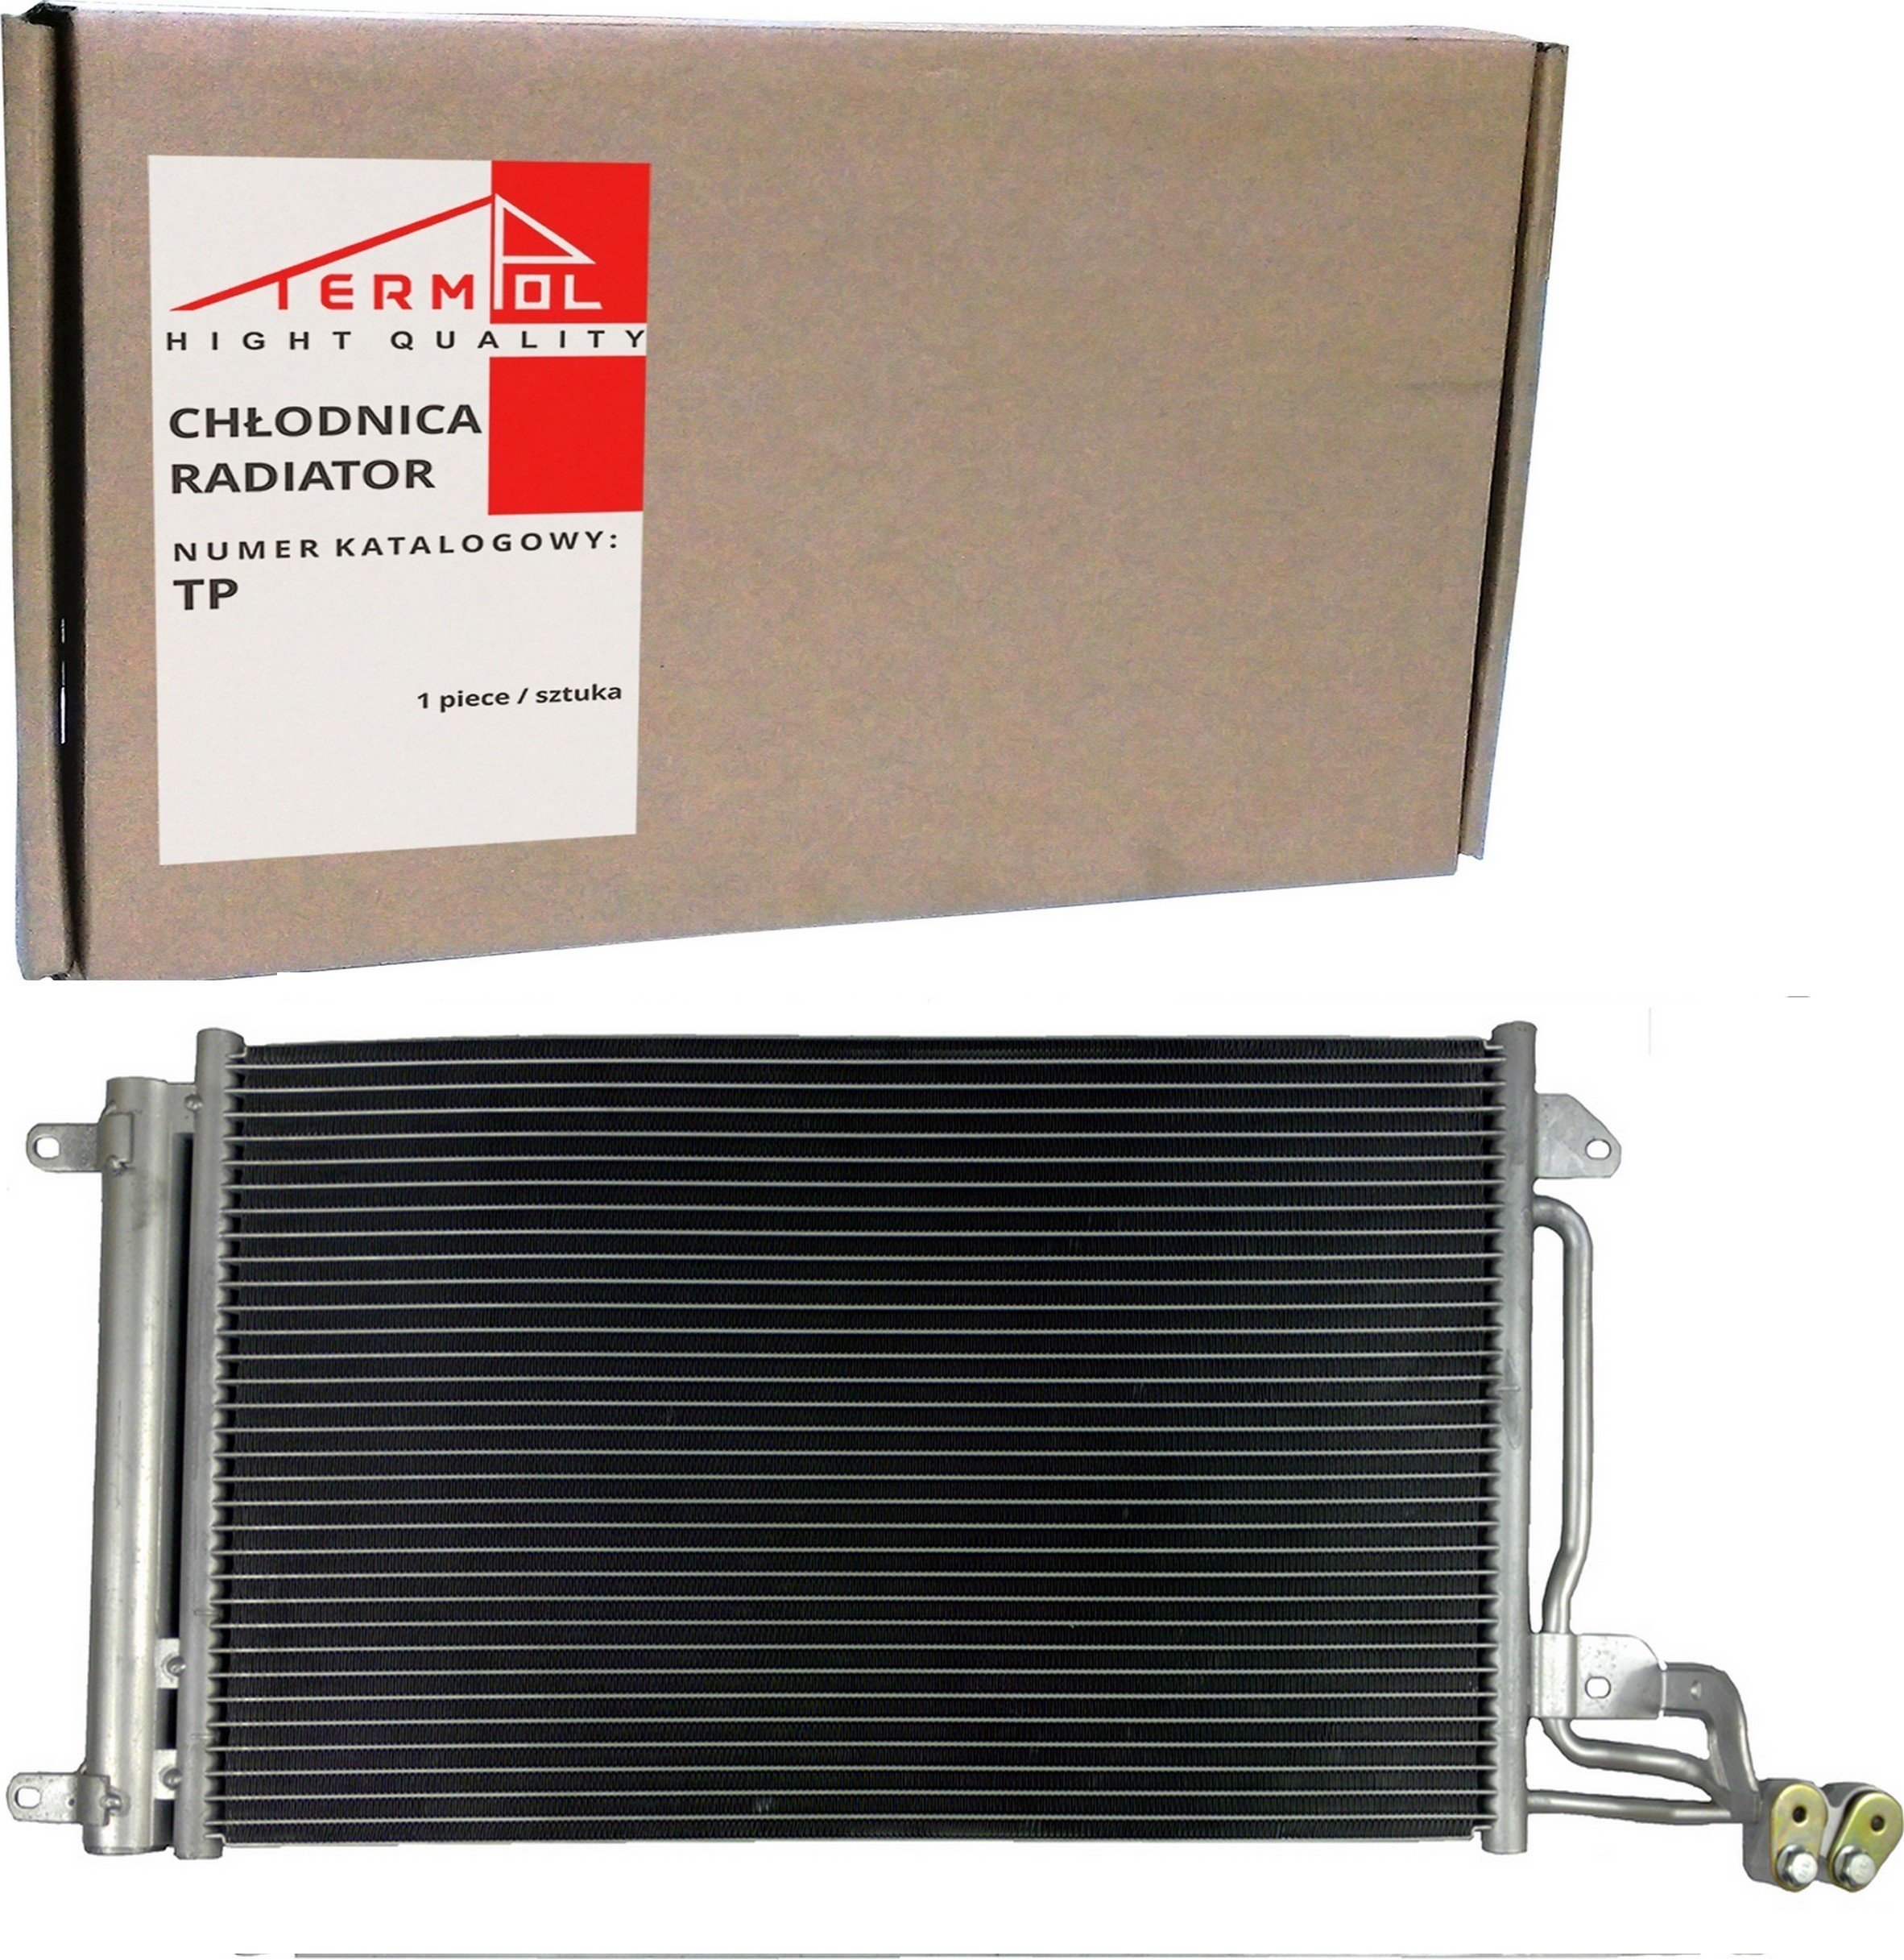 RADIATORIUS KONDICIONIERIUS SKODA RAPID VW POLO V 2009-